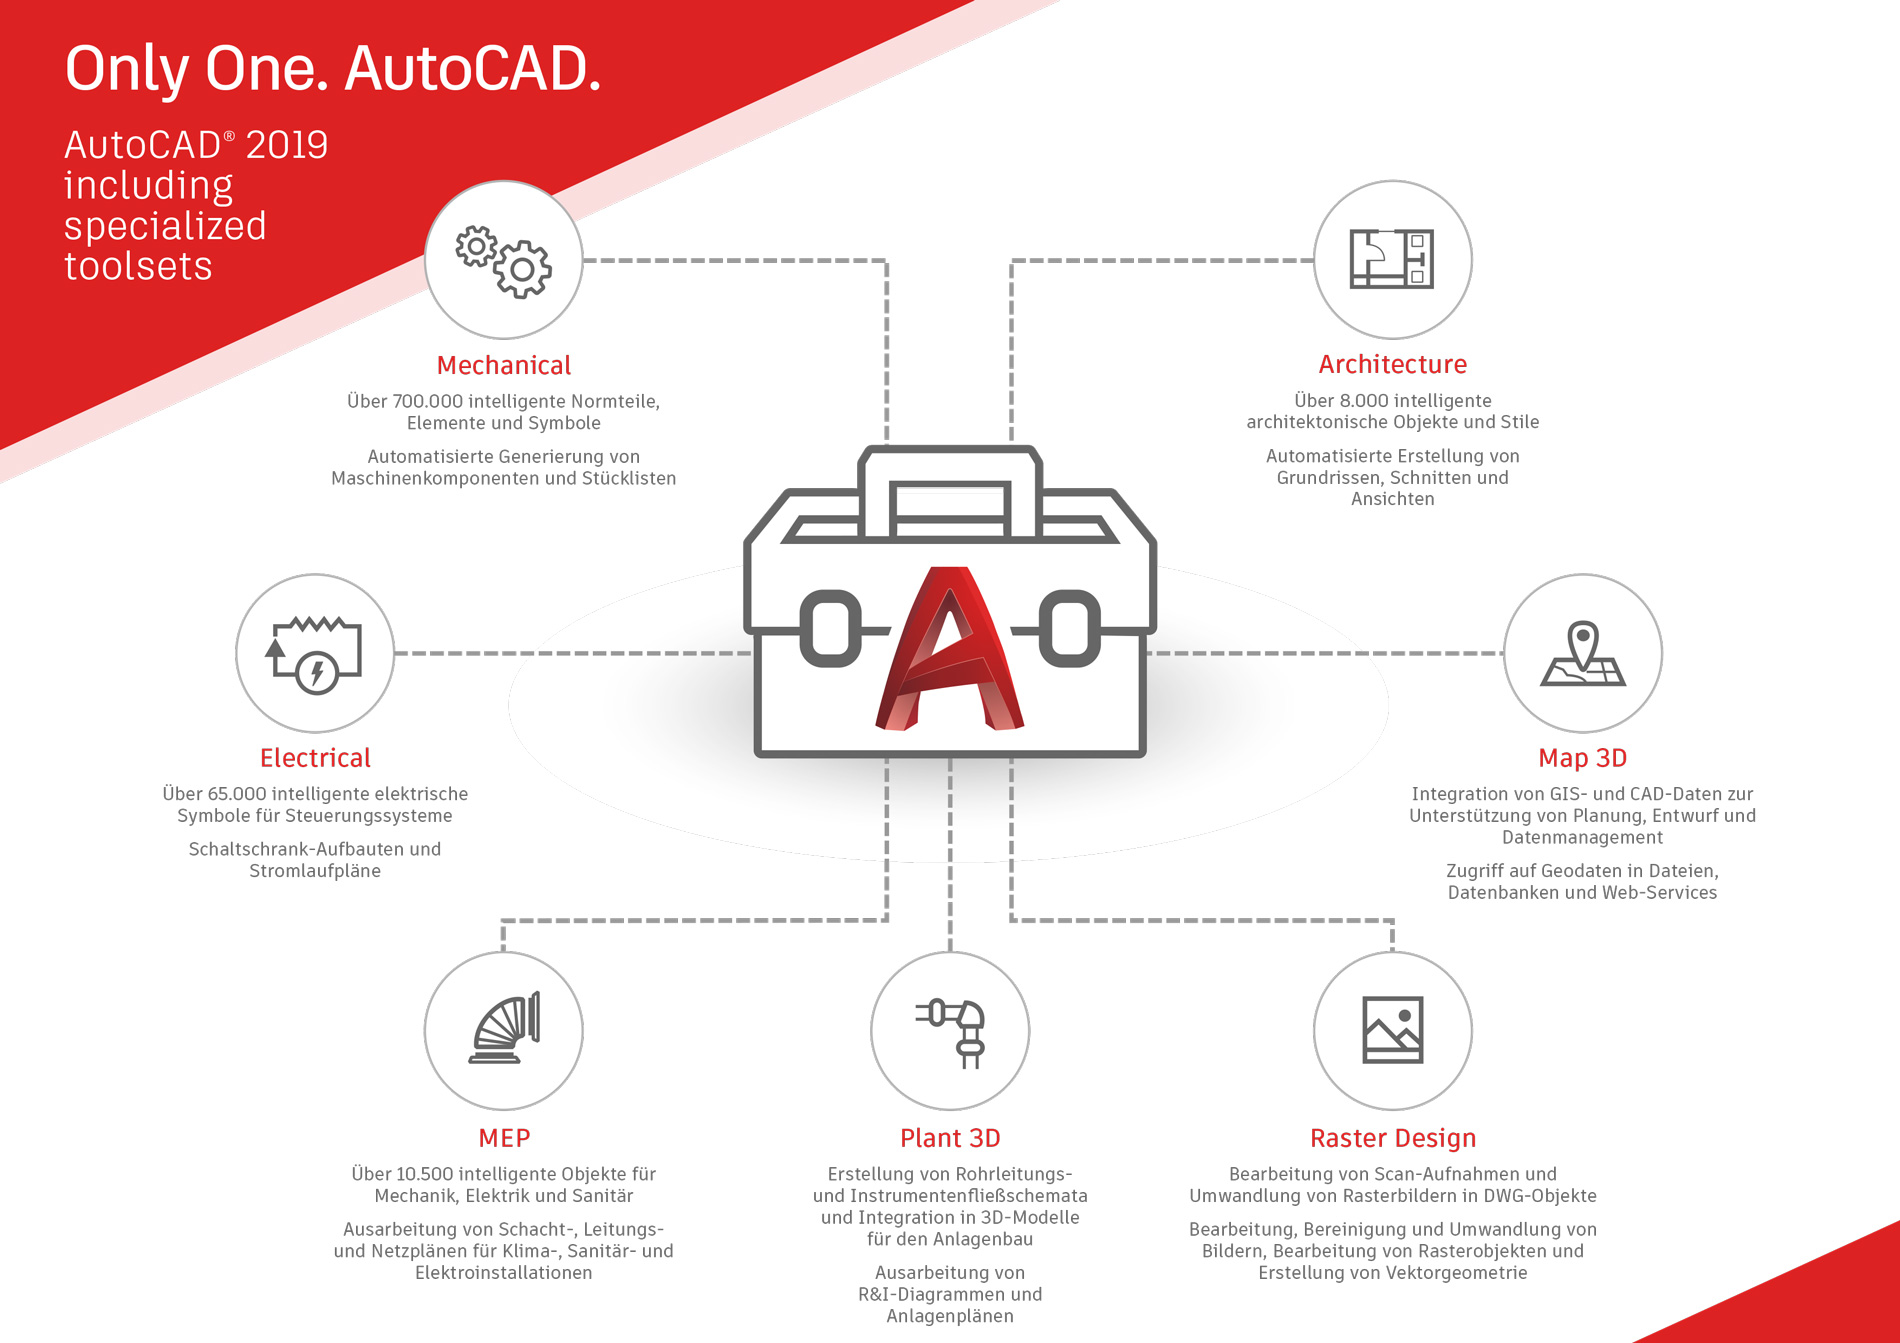 AutoCAD including specialized toolsets - übersicht